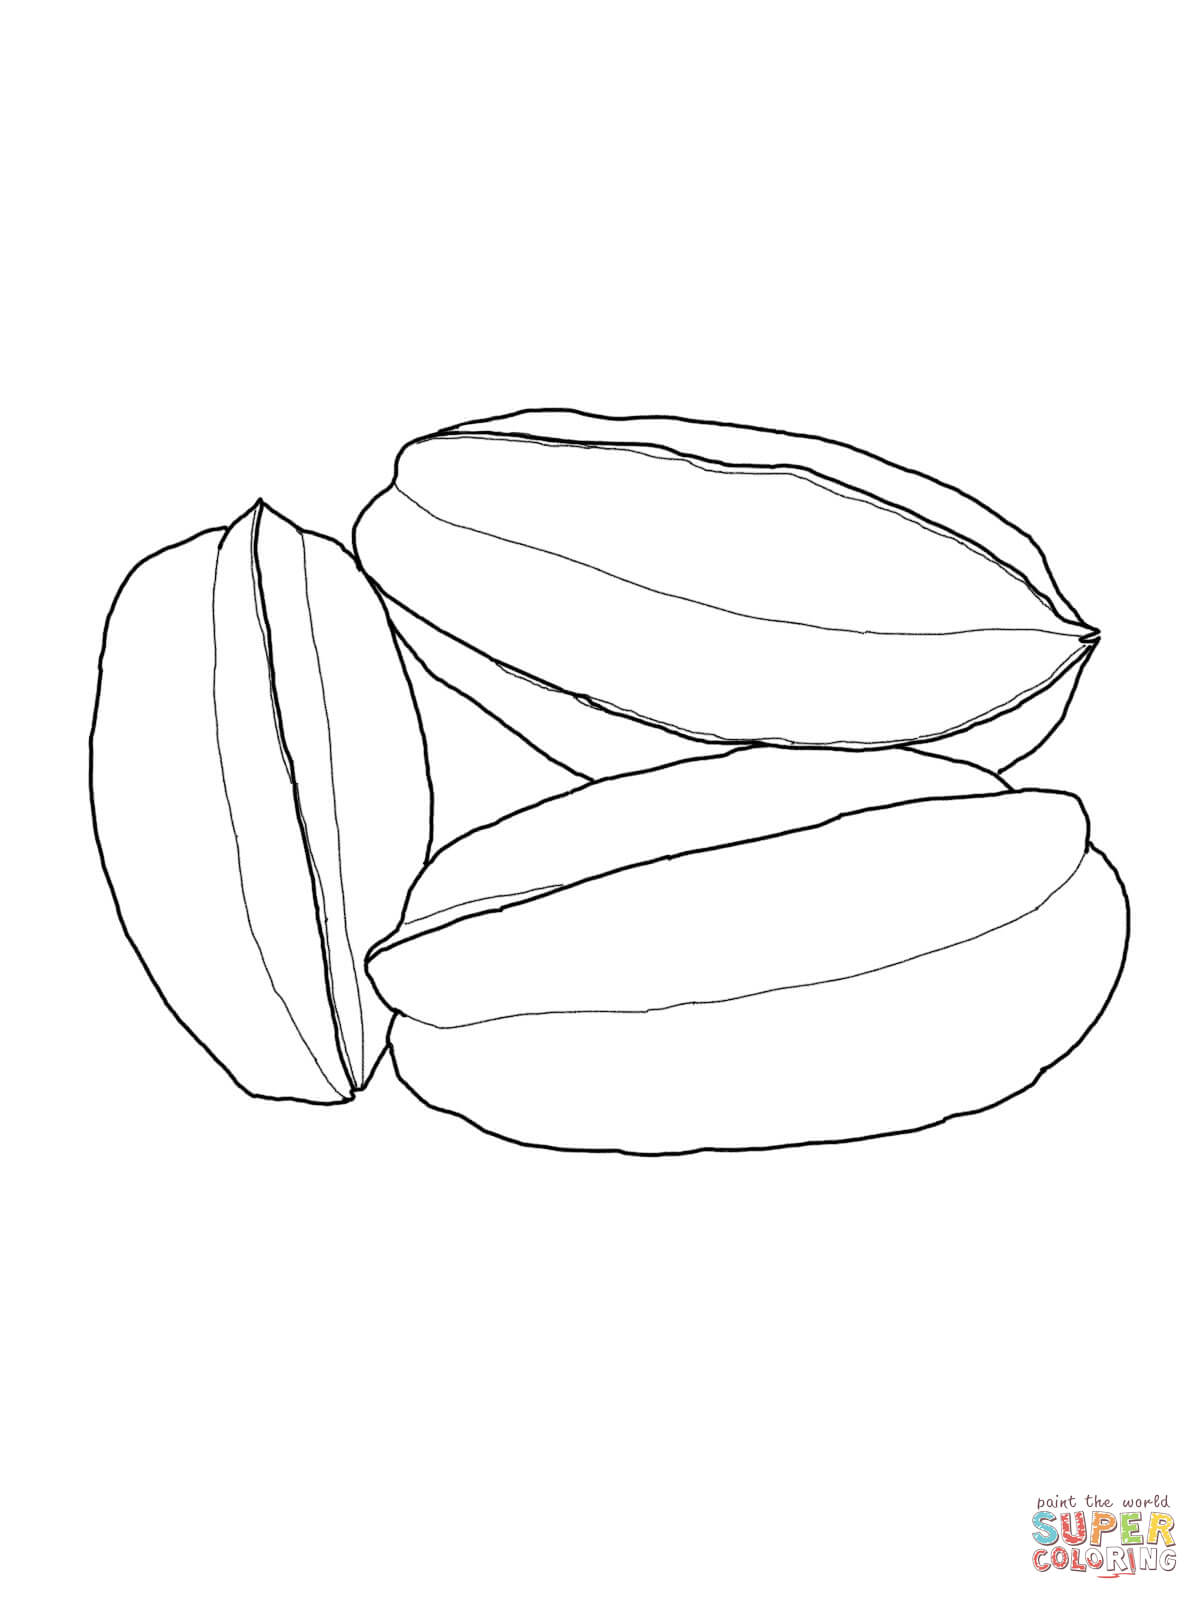 Star Fruit Coloring Page